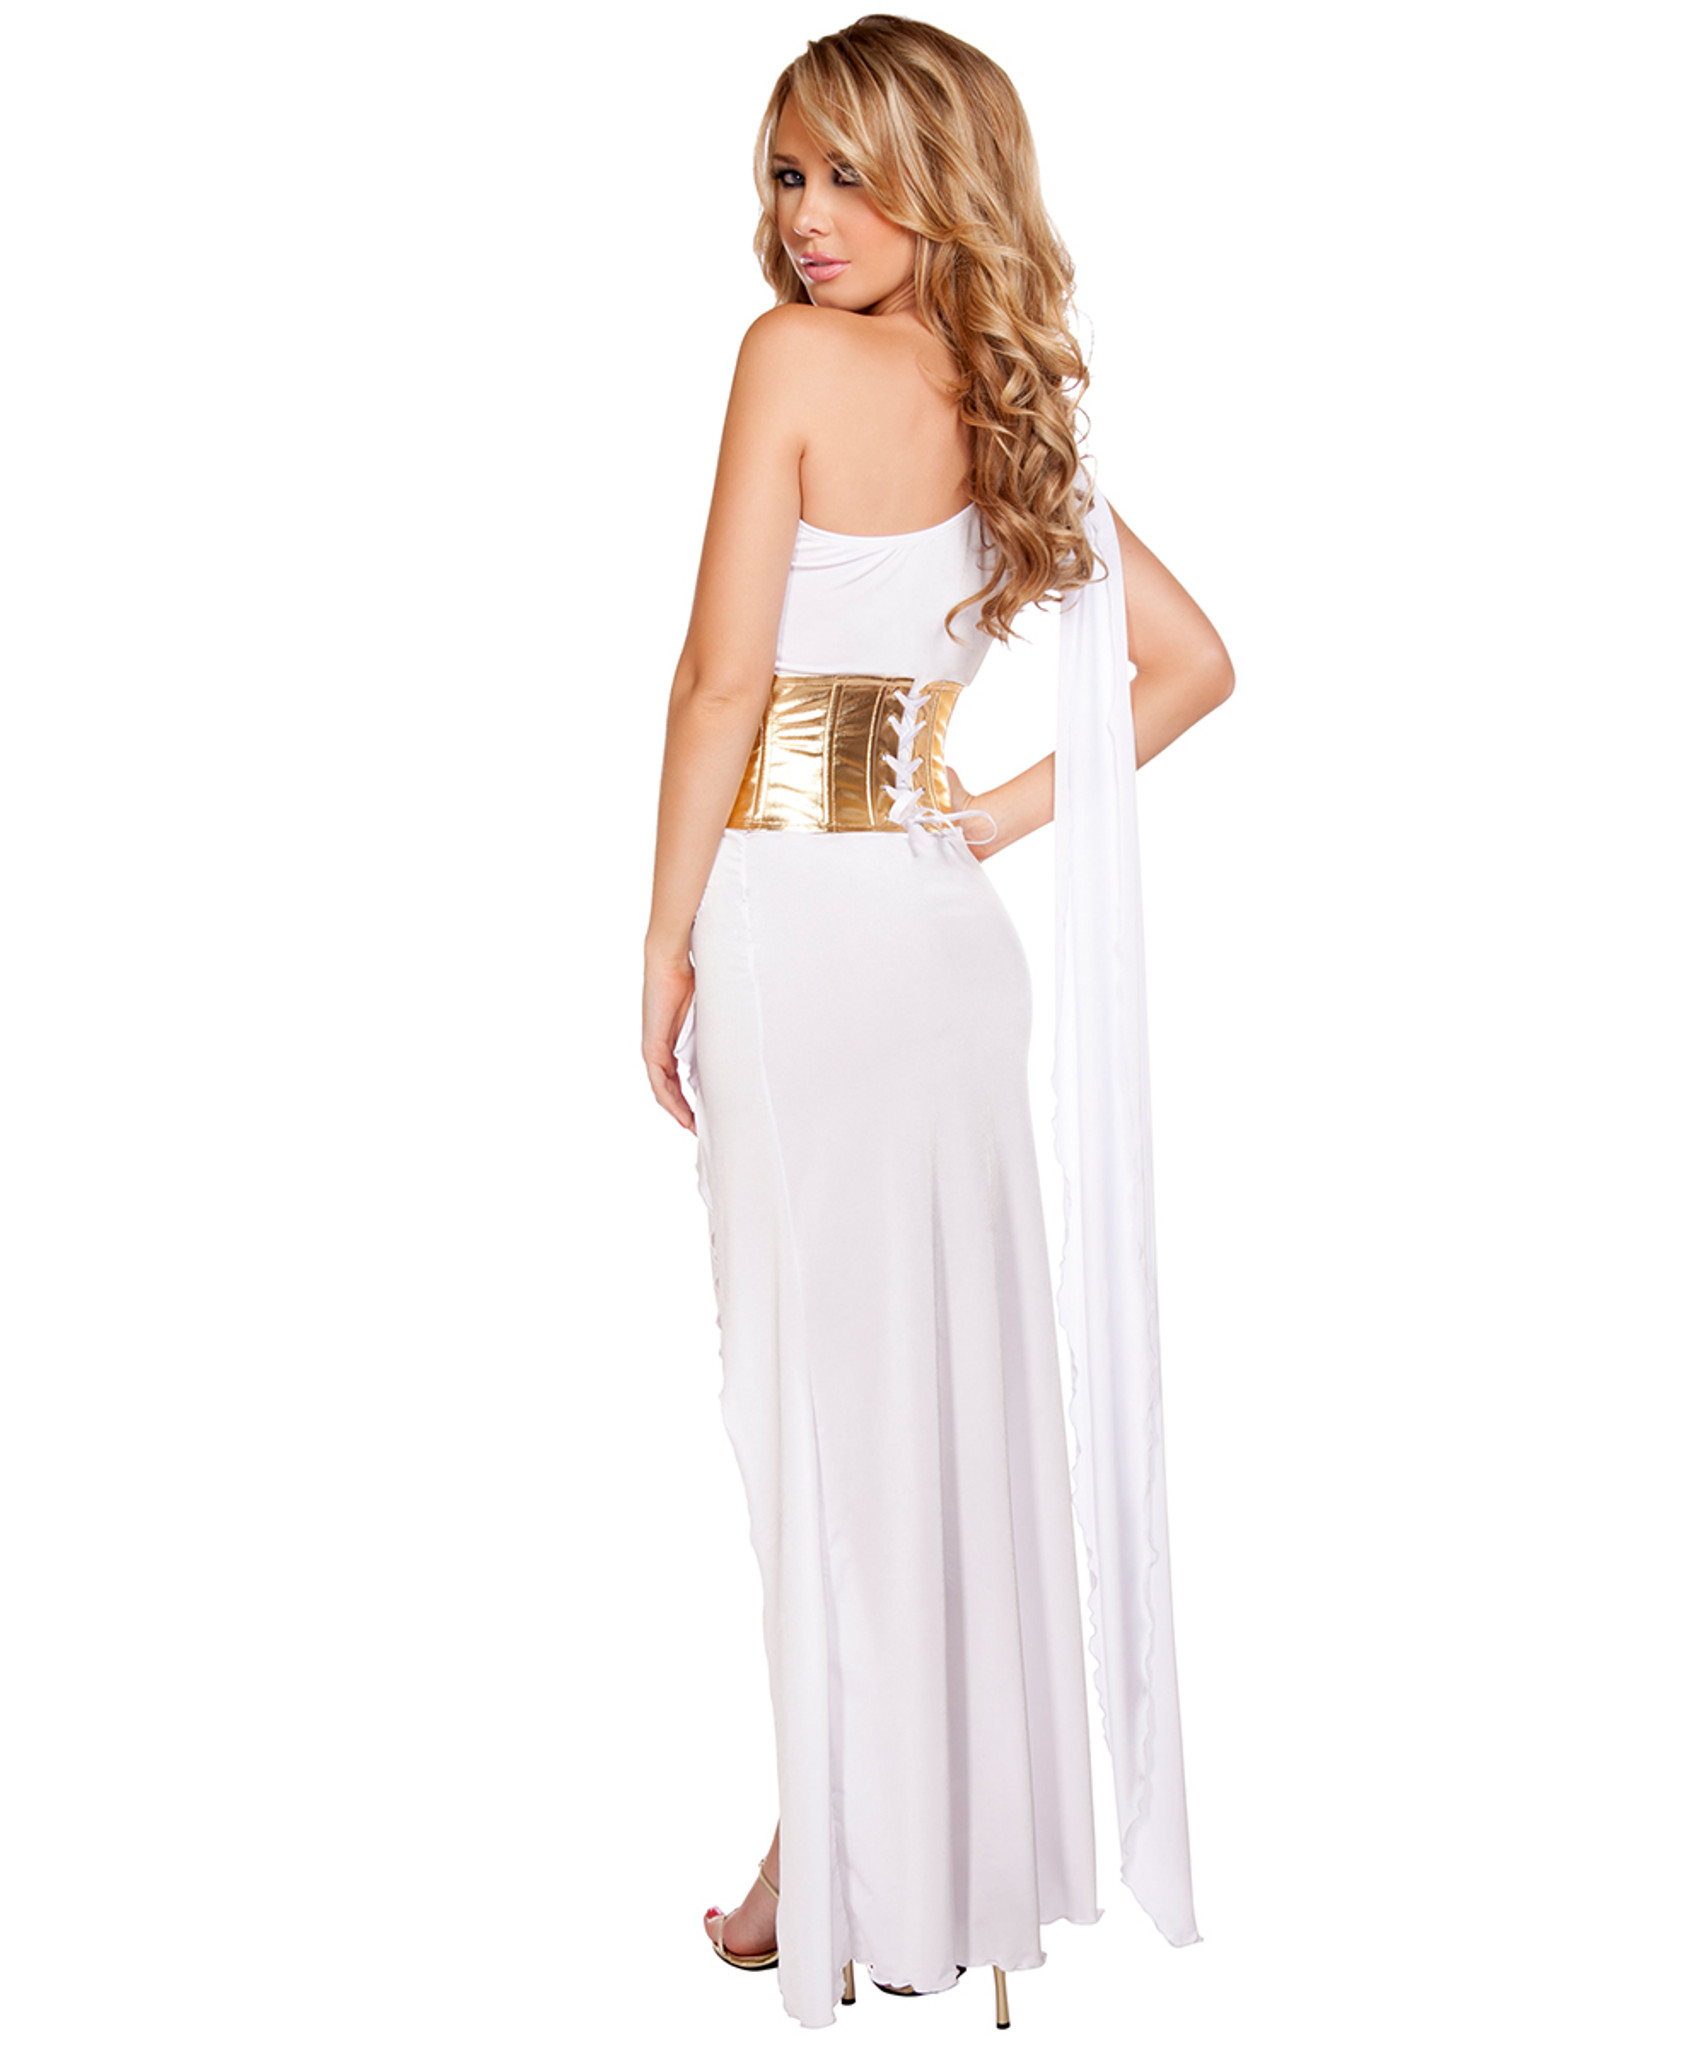 Georgeous Grecian Goddess Costume in Black or White - Sz S/M, M/L ...